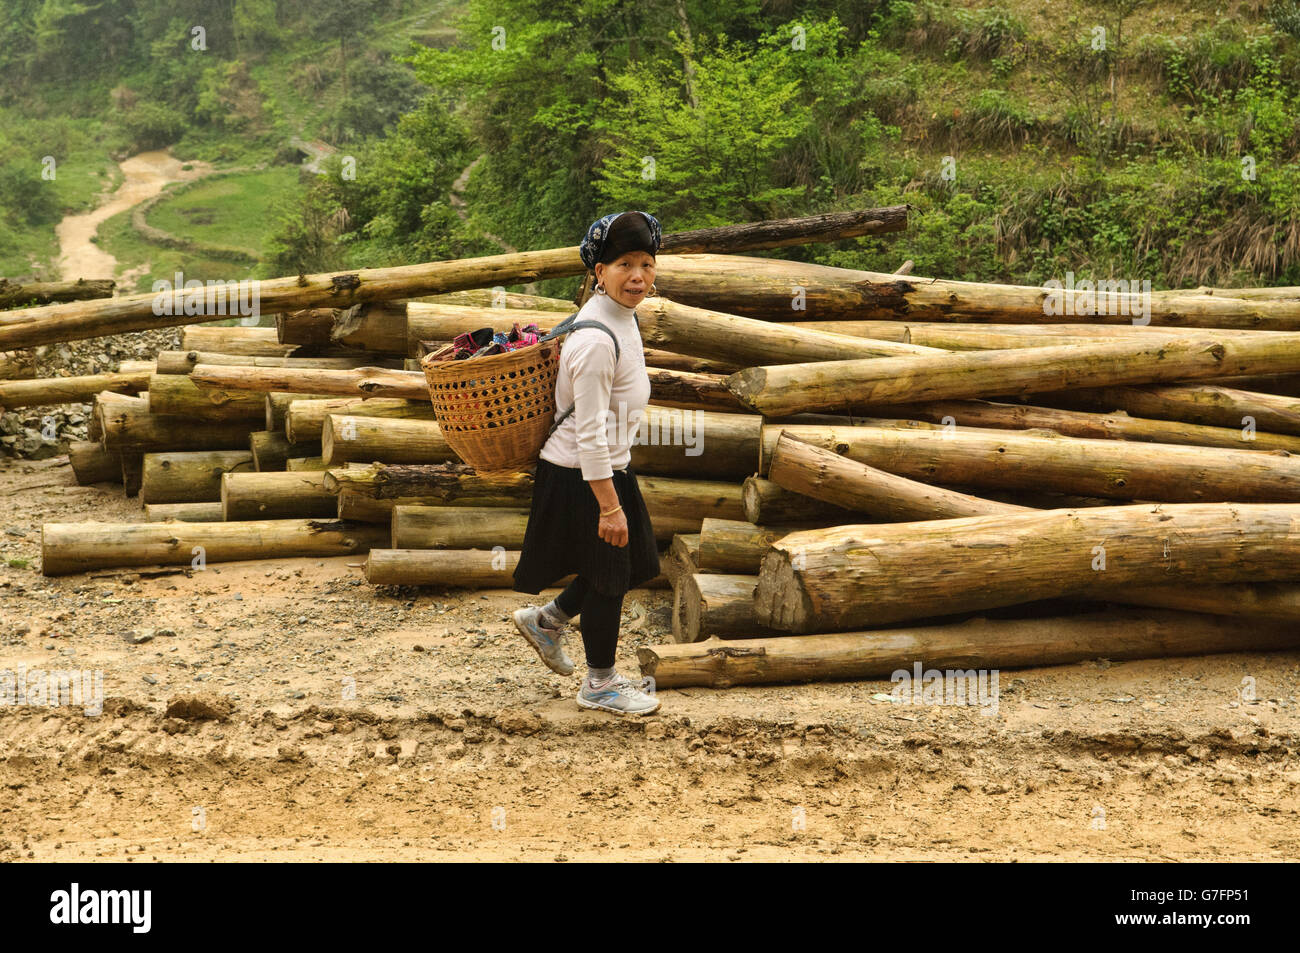 Hilltribe carrying vegetable basket in Guilin, China - Stock Image